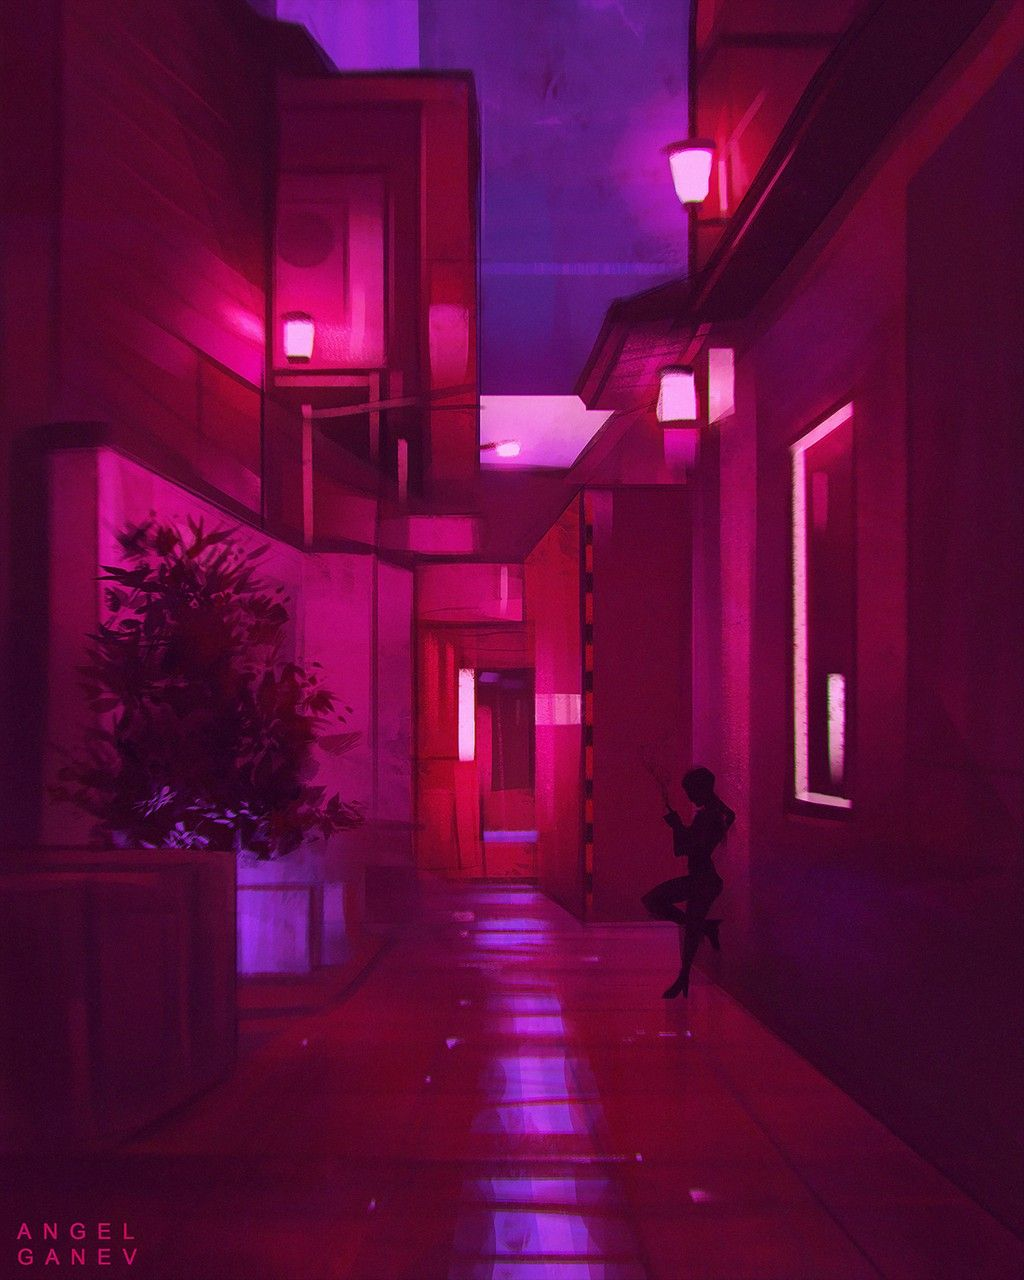 Pin By 审美 Cami On 3 In 2020 Pink Aesthetic Neon Aesthetic Aesthetic Themes